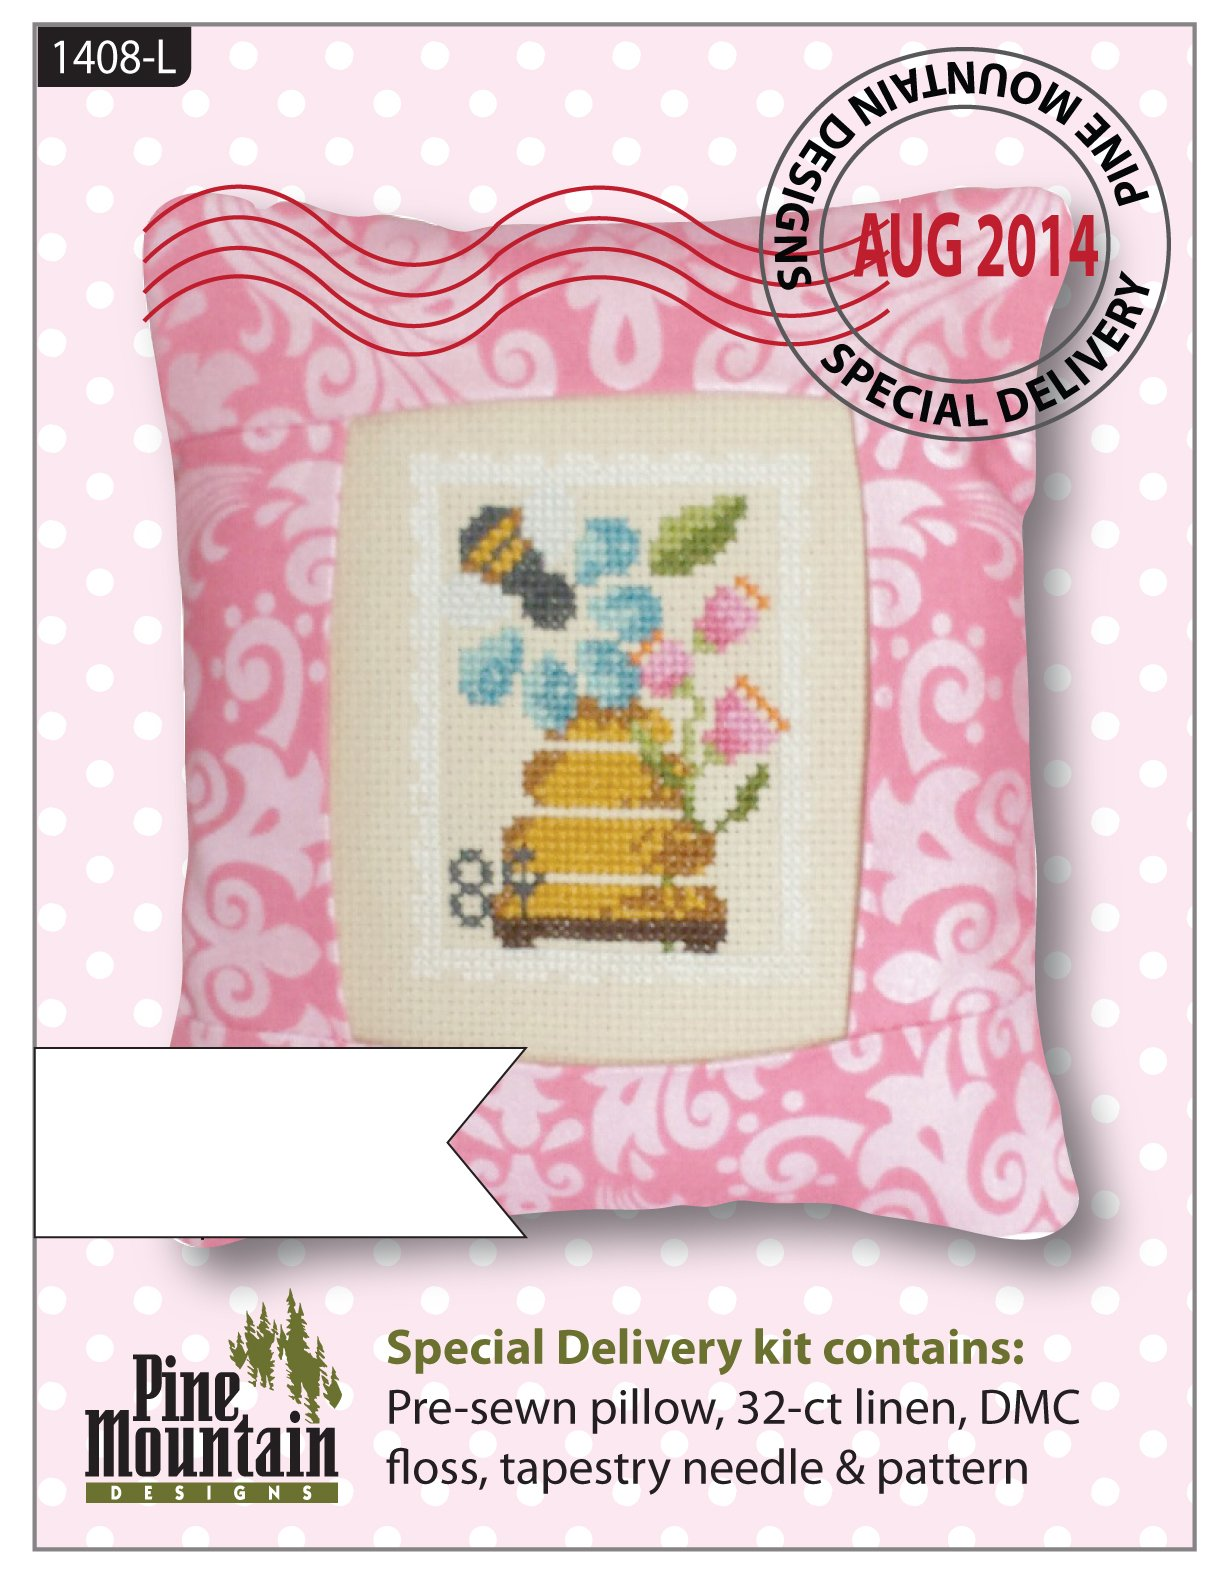 August Stamp Special Edition (1408)